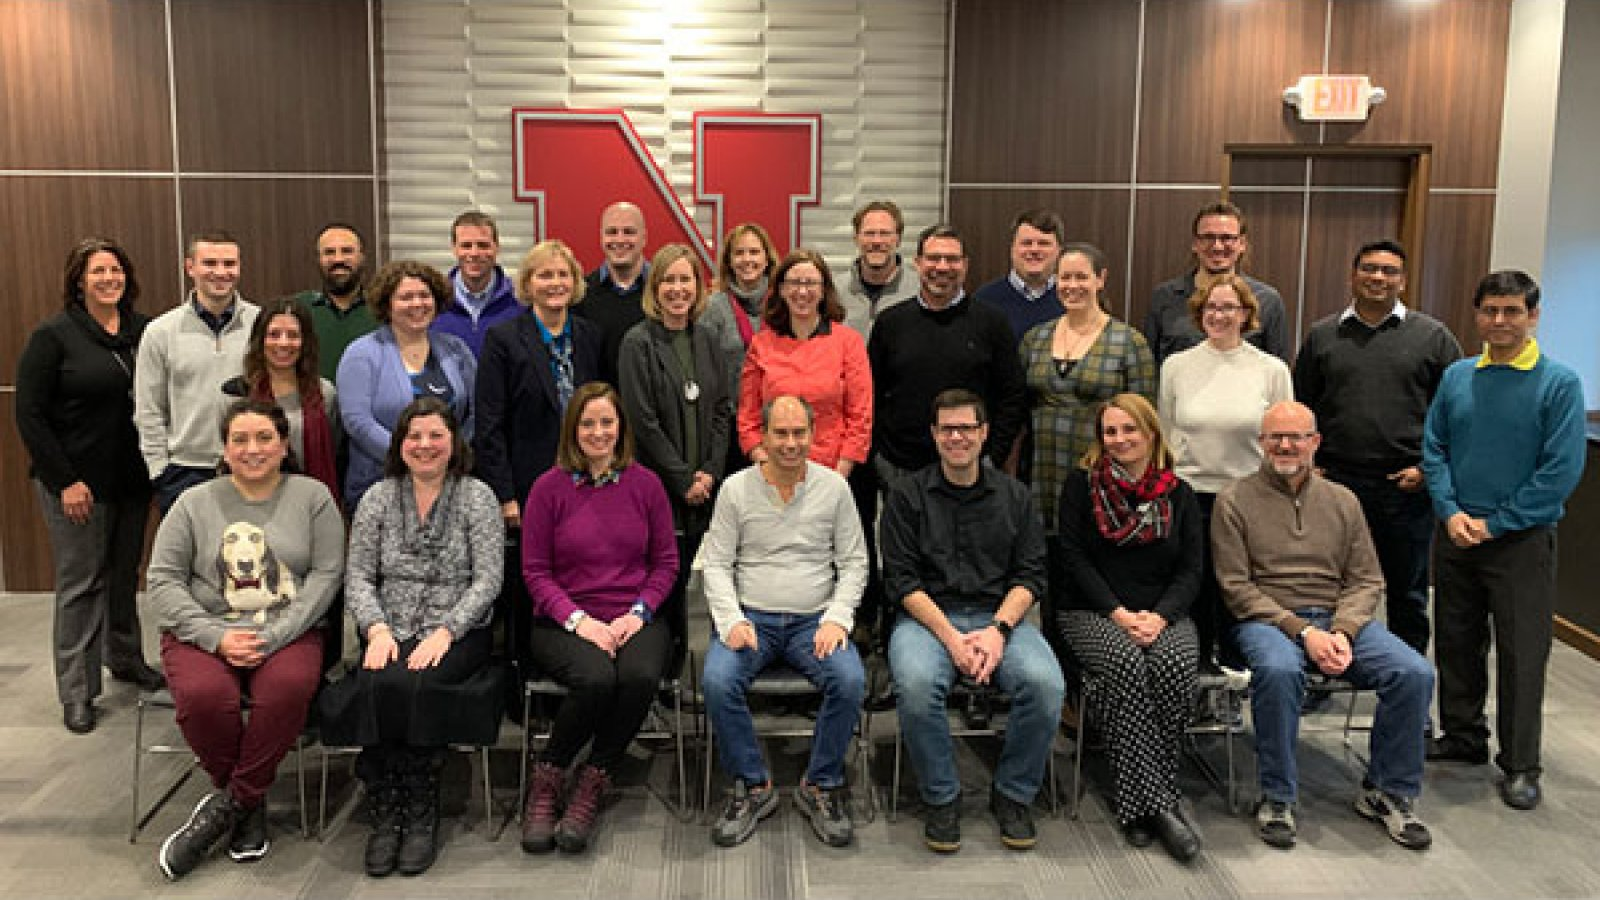 Two engineering faculty - Mark Wilkins, professor of biological systems engineering, and Srivatsan Kidambi, associate professor of chemical and biomolecular engineering, are among the 25 chosen for UNL's second year of FLAIR.